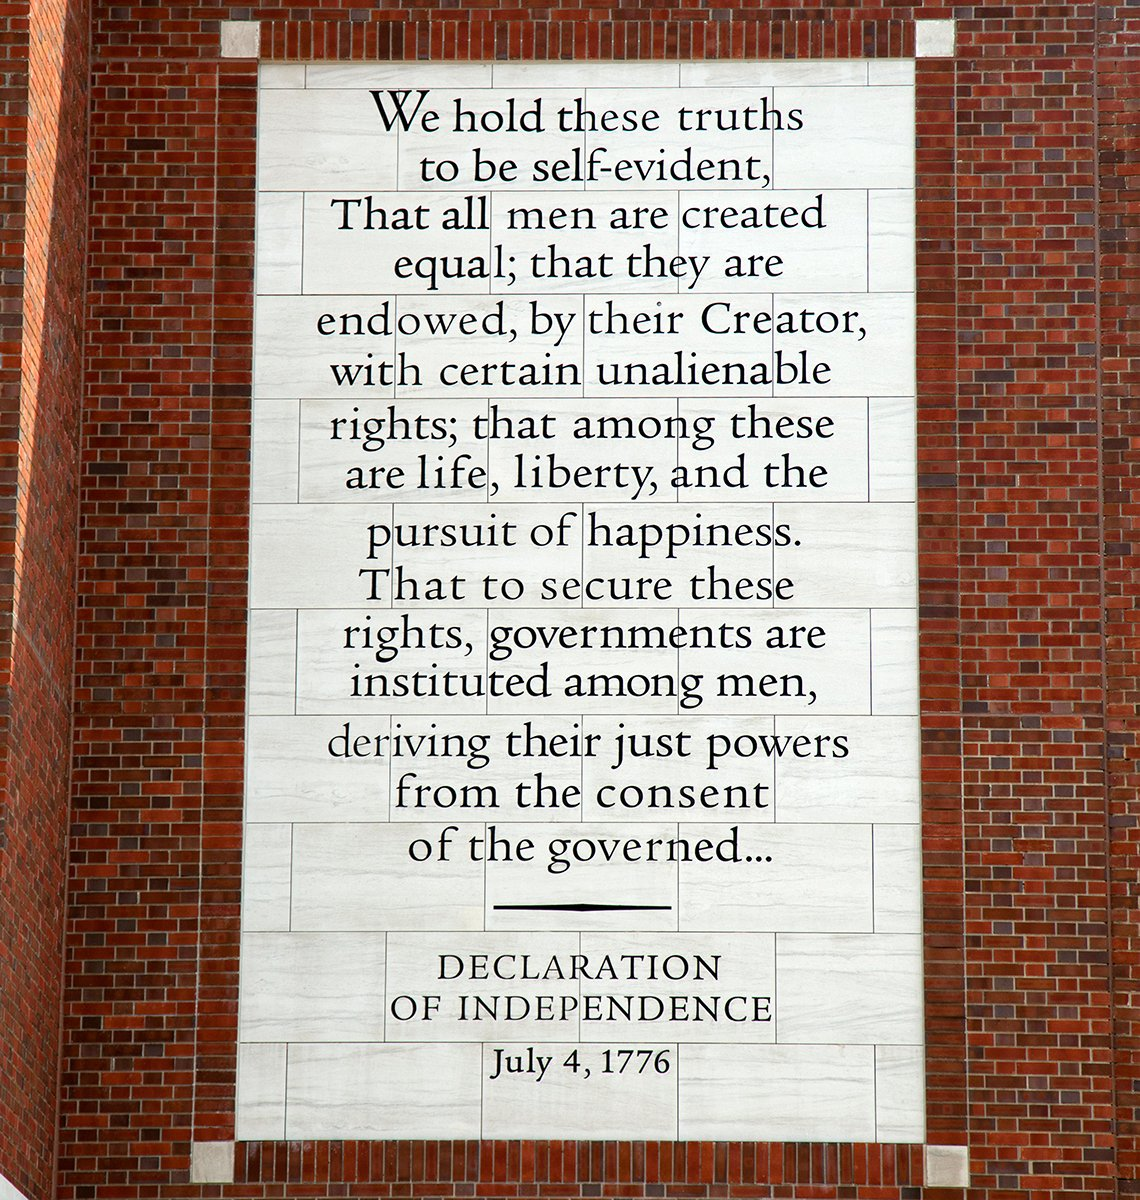 Passage from the declaration of independence